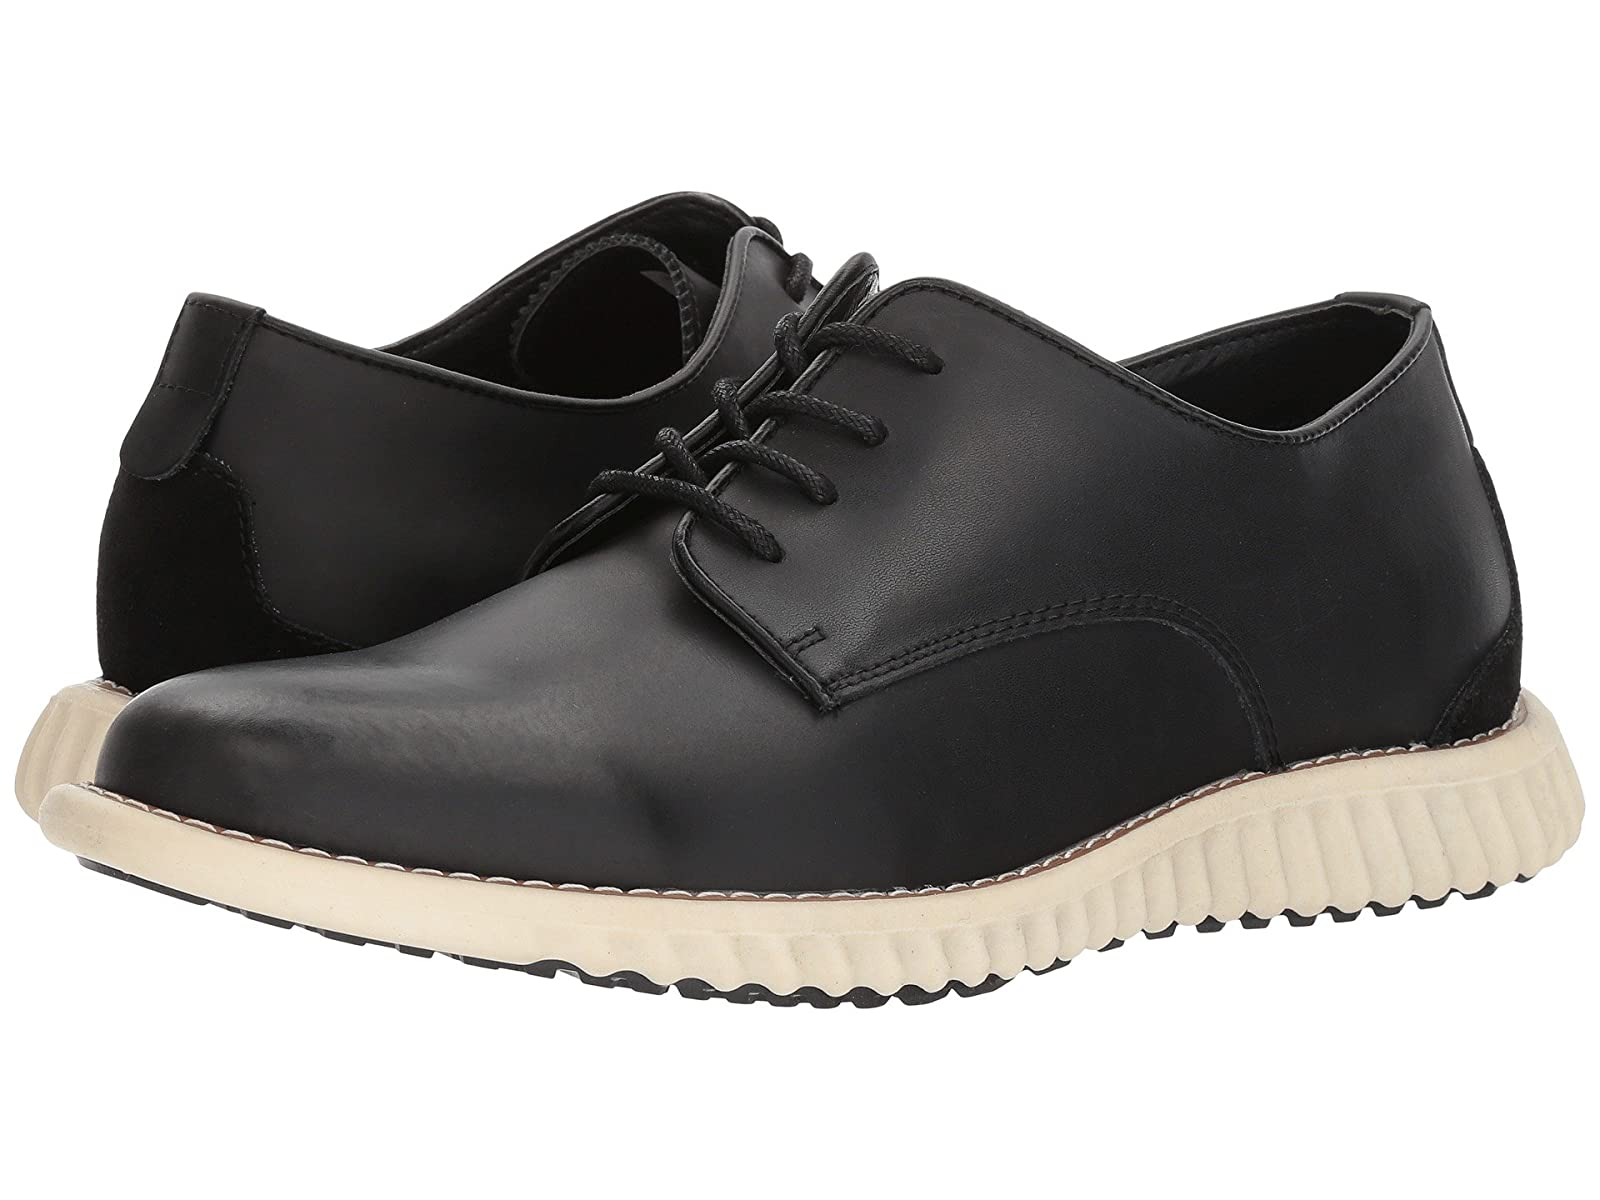 Steve Madden VanceAtmospheric grades have affordable shoes